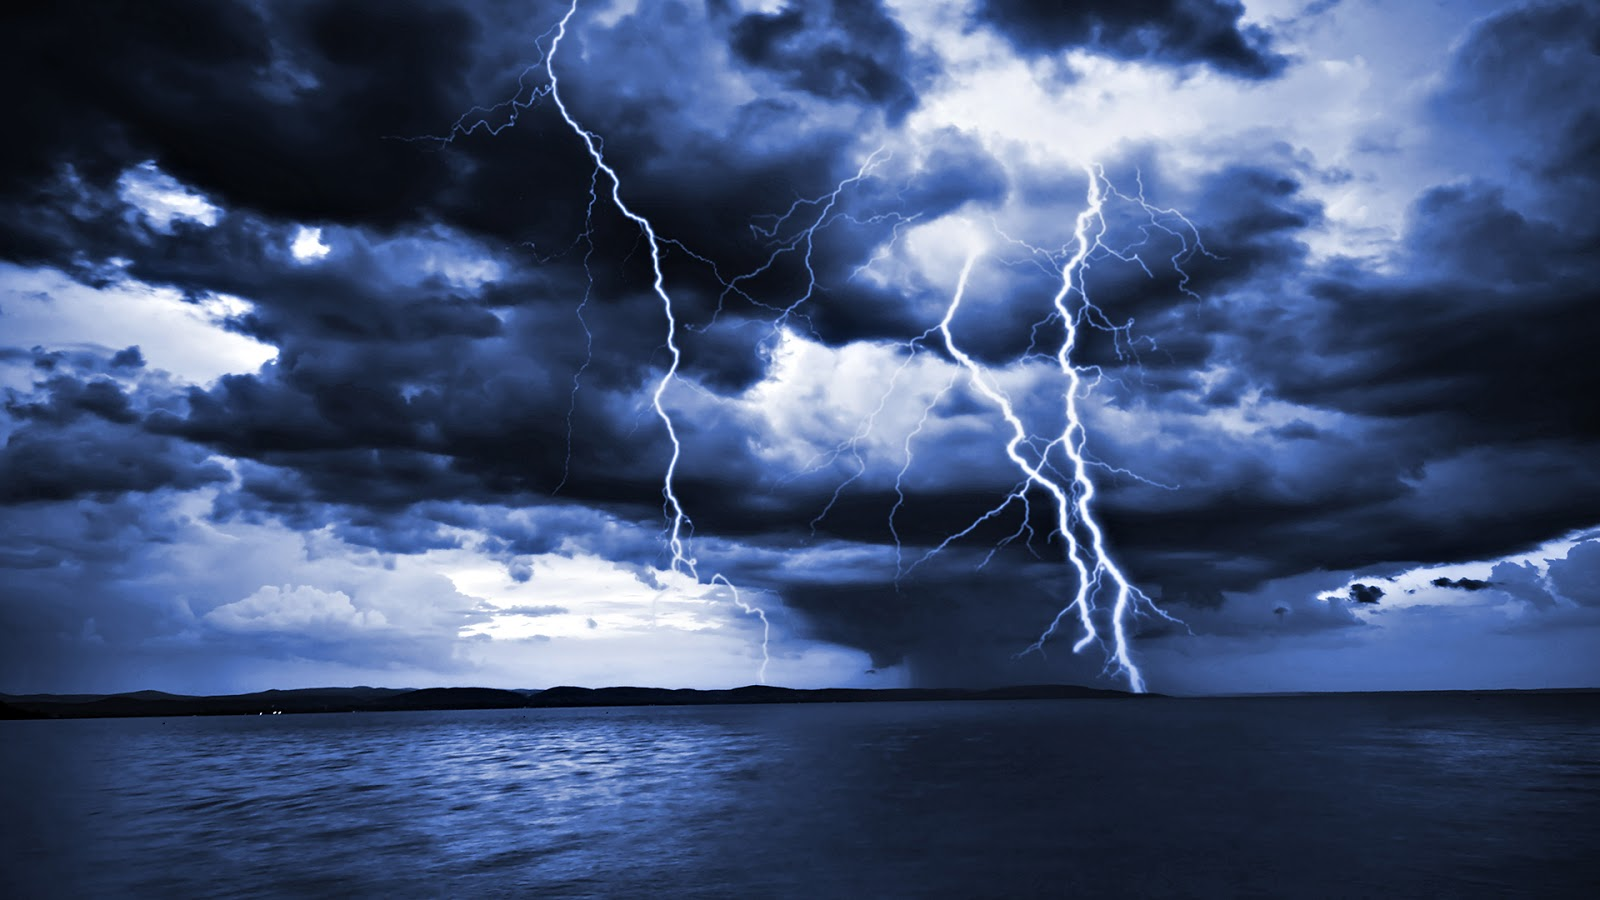 sky lightning wallpapers hd 1600x900